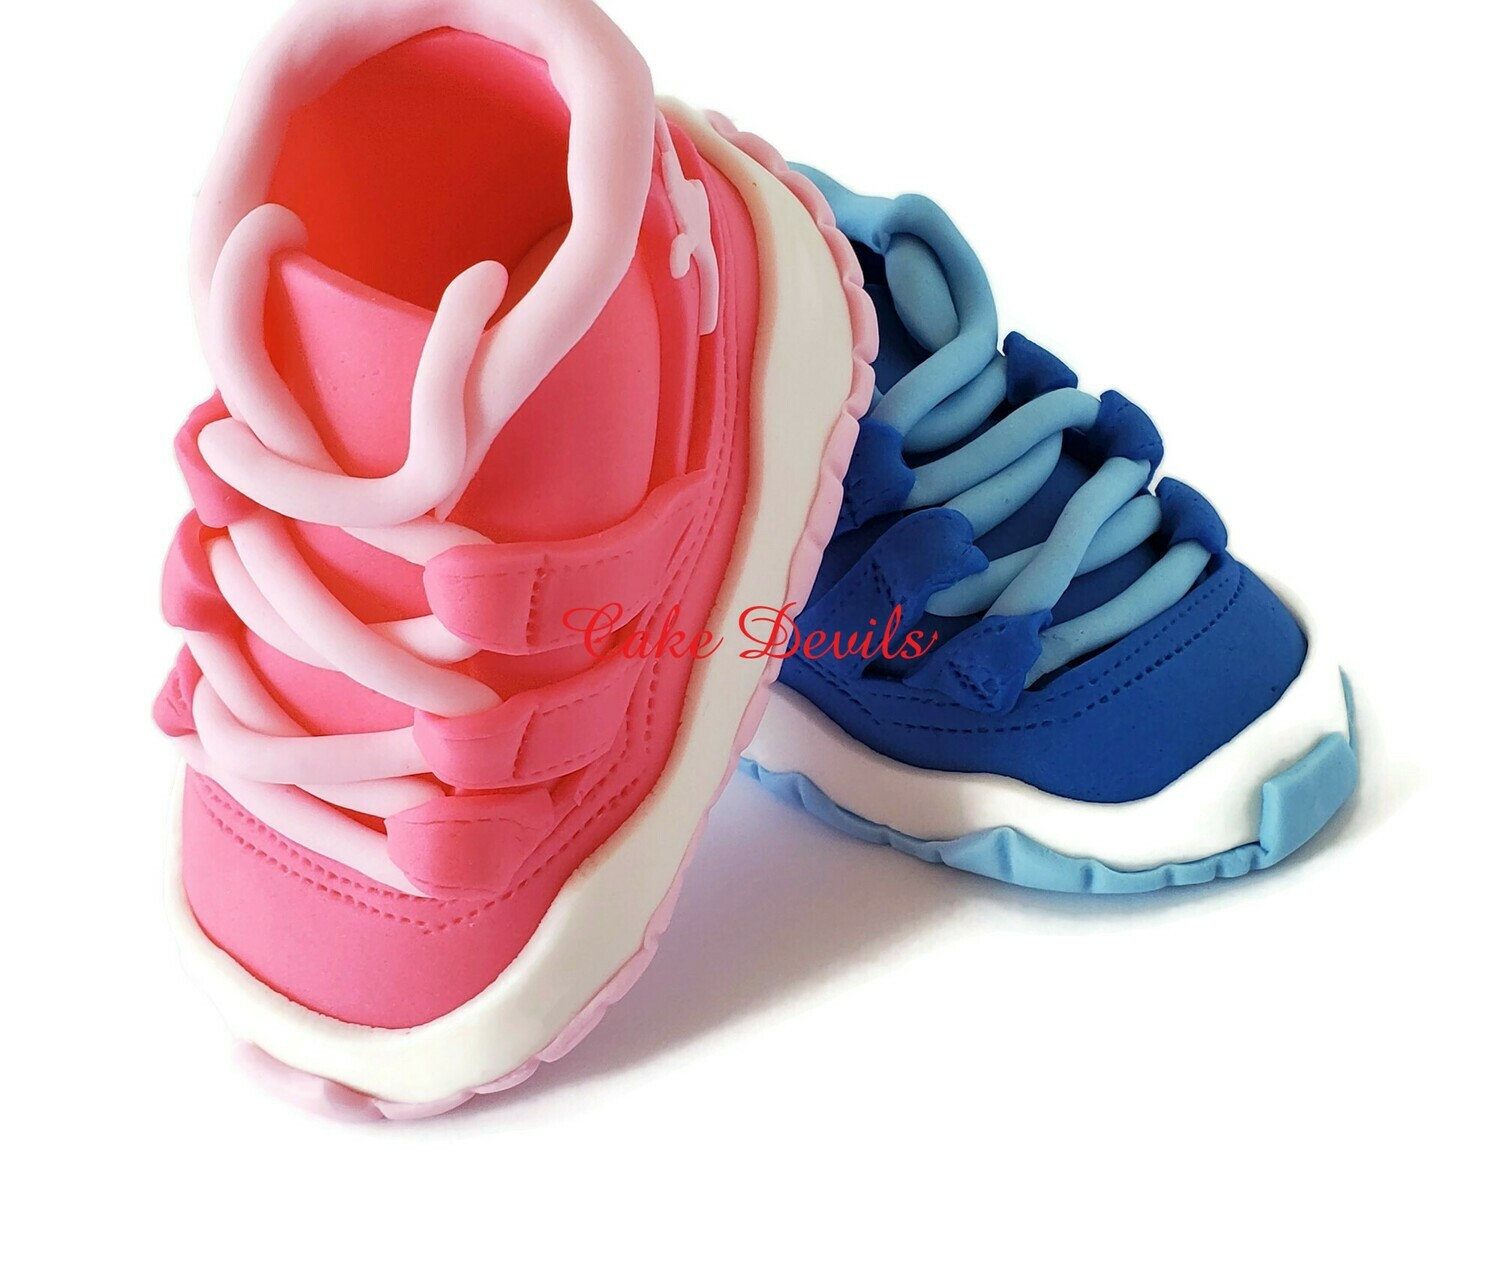 Fondant Gender Reveal Sneakers Cake Toppers, Great on top of a Shoe Box Cake for your Gender Reveal Party! , Nike Jordan 11 inspired